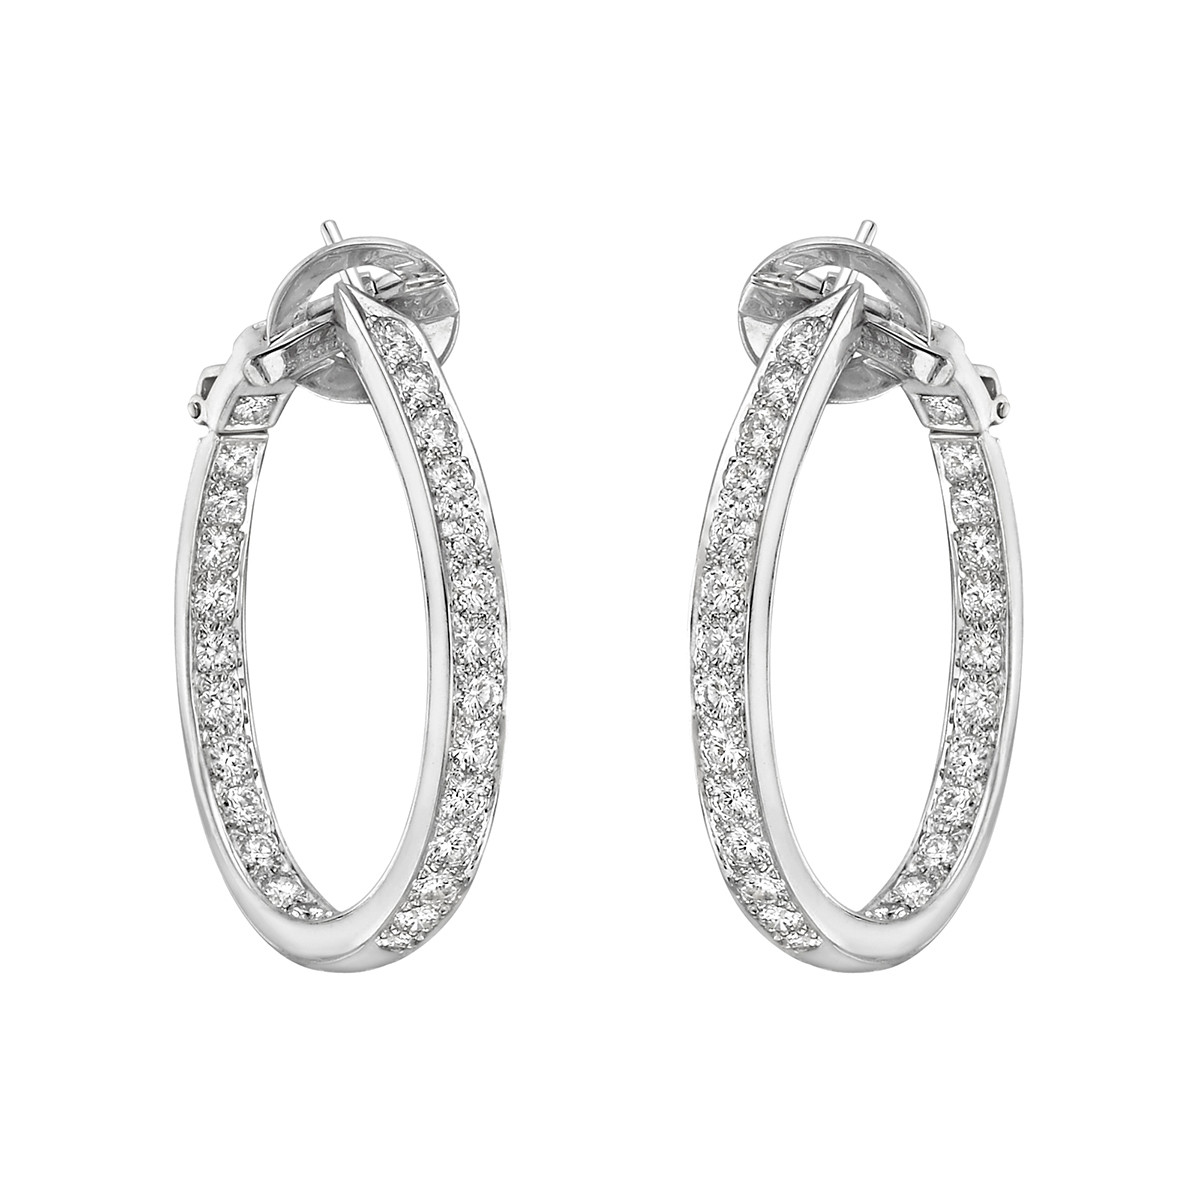 silver earrings twist of hoop oval dust gems hoops gold diamond shape sterling